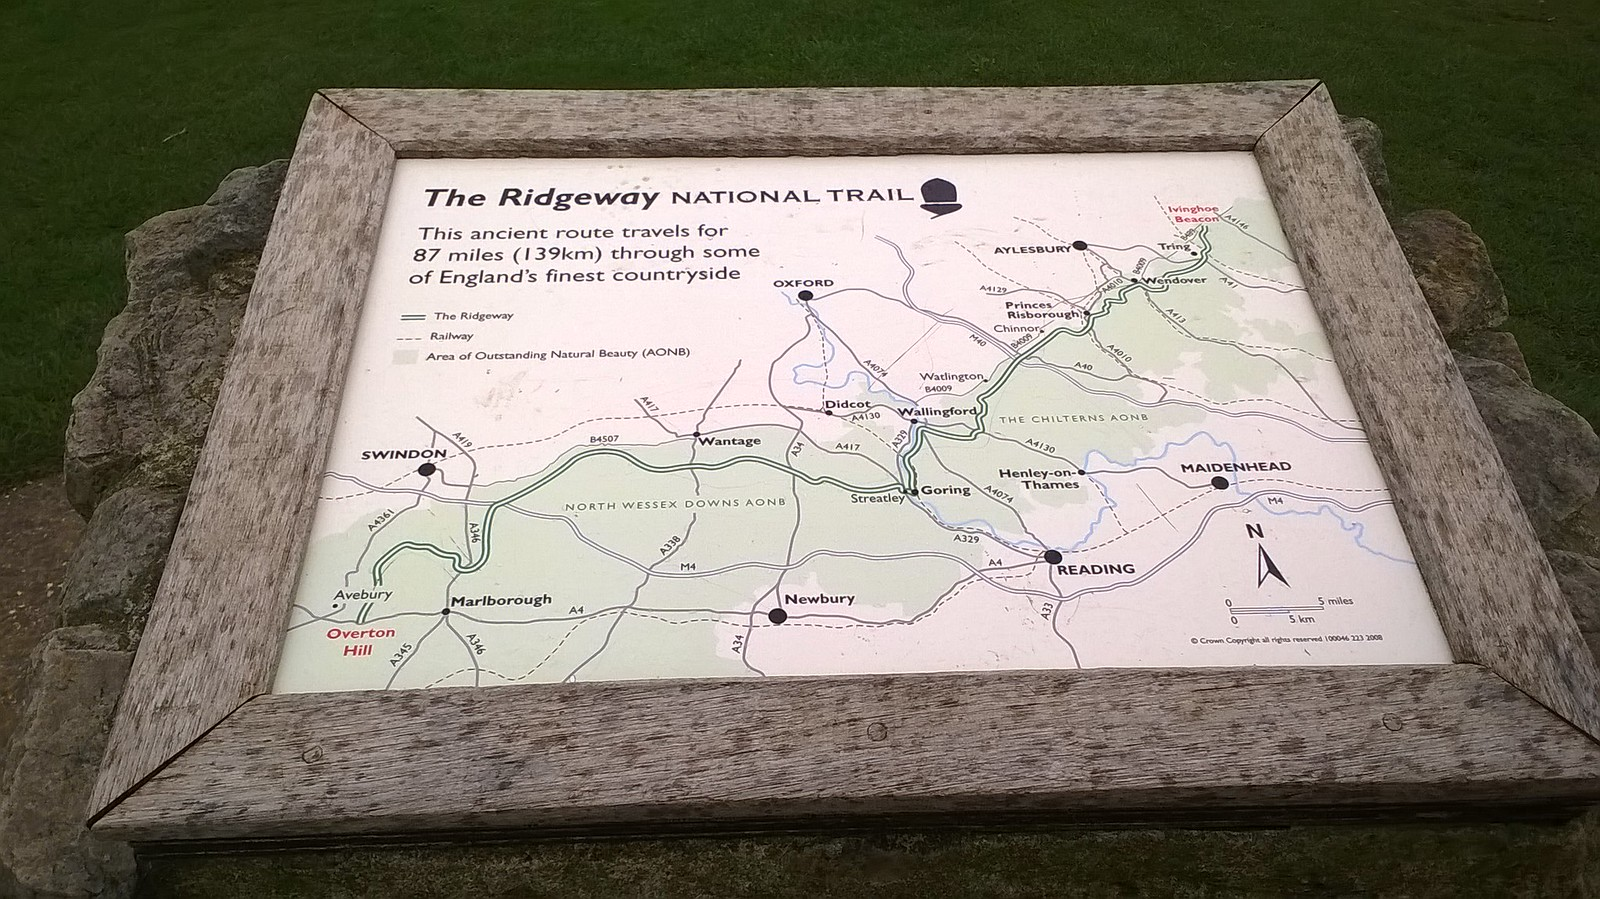 'The Ridgeway National Trail' Situated on summit of Ivinghoe Beacon